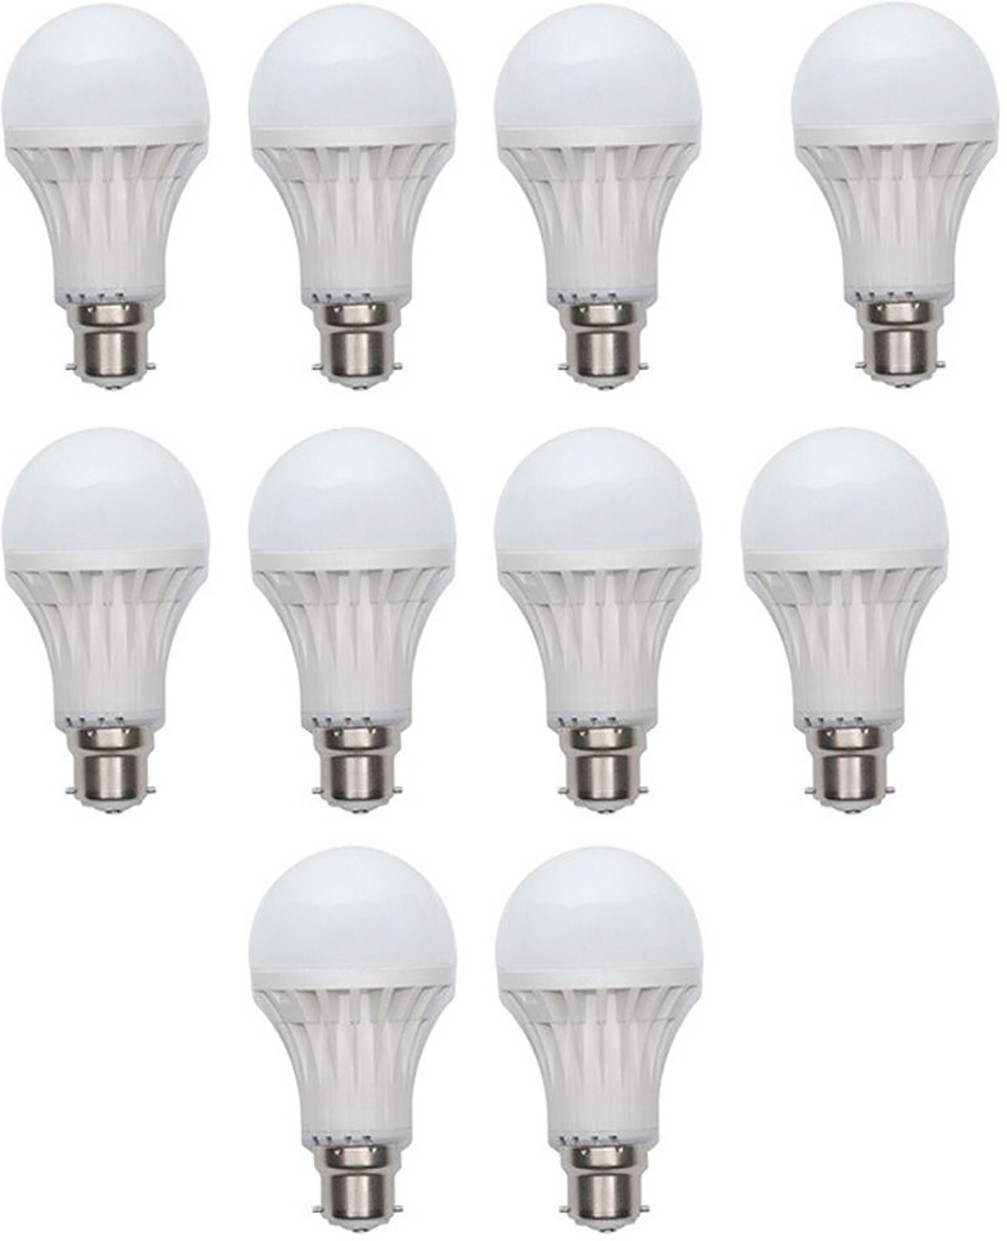 Kalash 9 W B22 LED Bulb(White, Pack of 10) Image